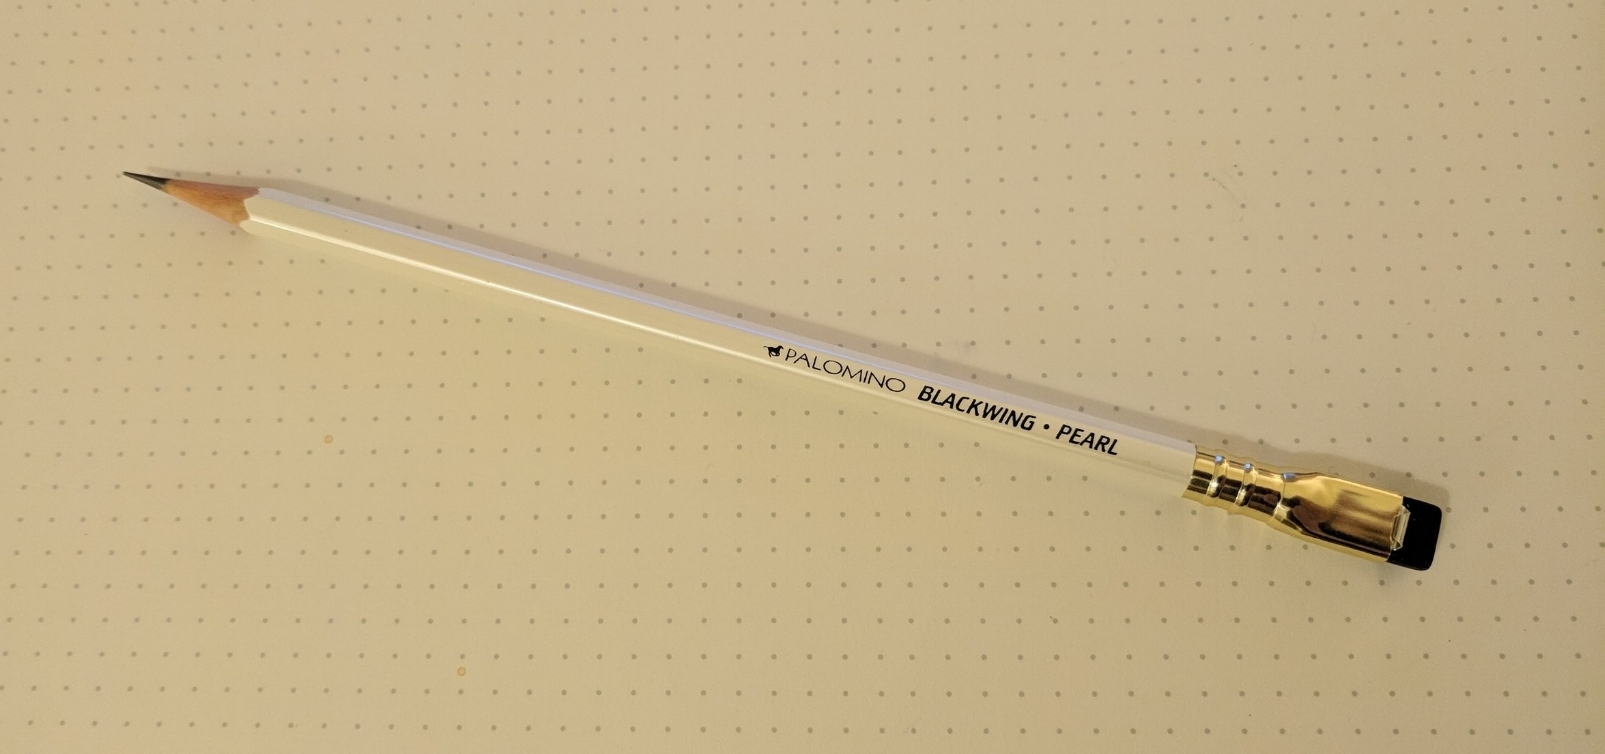 Blackwing-Pearl-Pencil